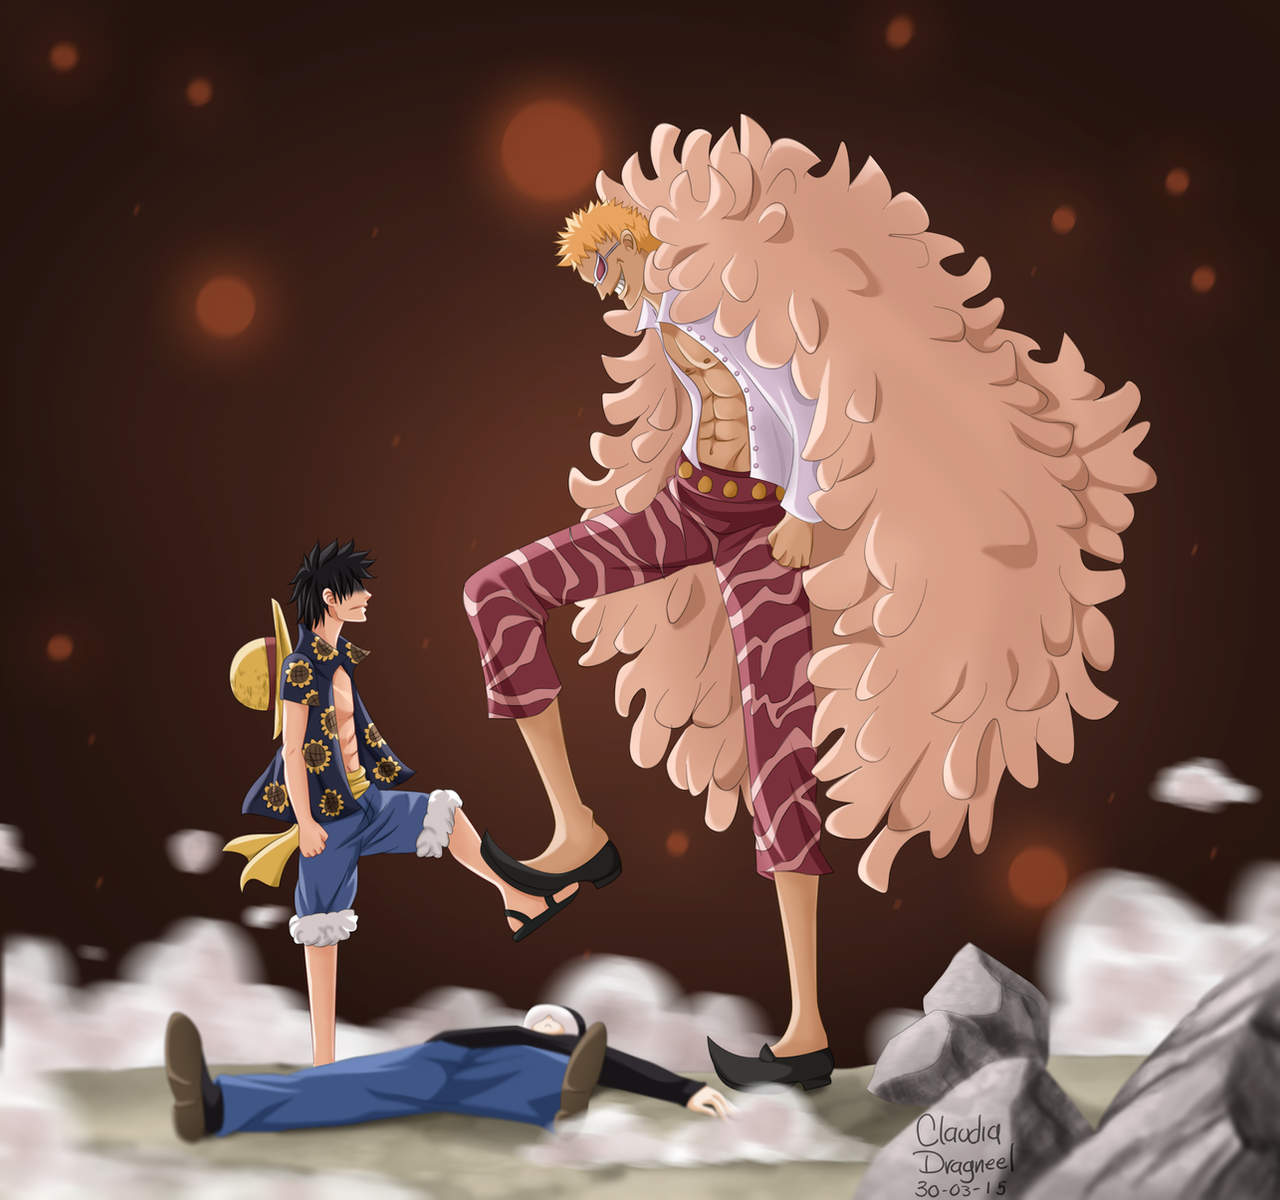 The Pros Of Cons Of Painting Vs Wallpapering: Luffy Vs Doflamingo By Claudiadragneel On DeviantArt